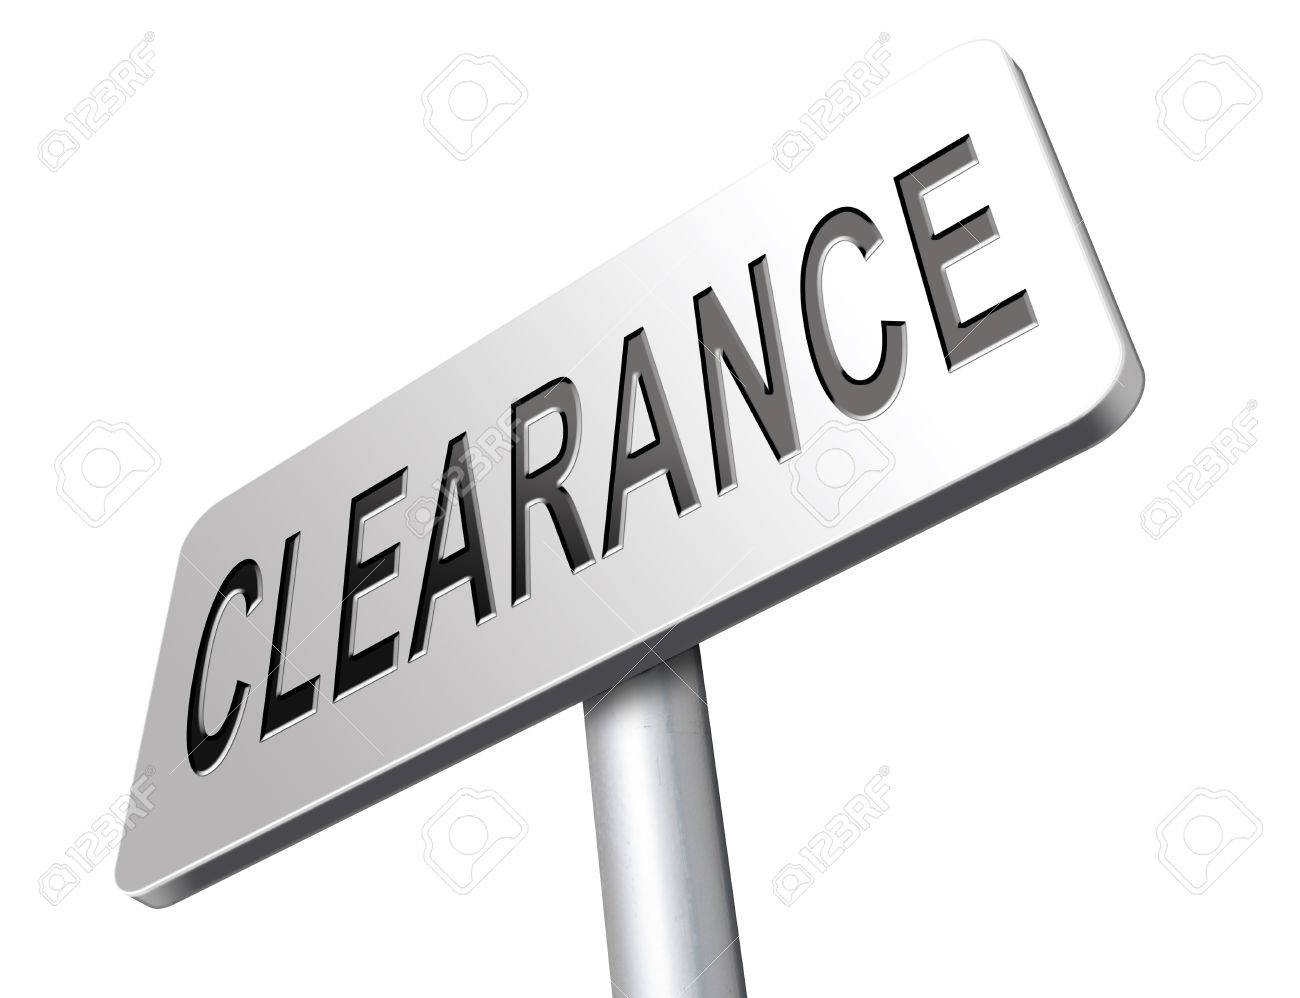 clearance grand sale sales and reduced prices off authorization